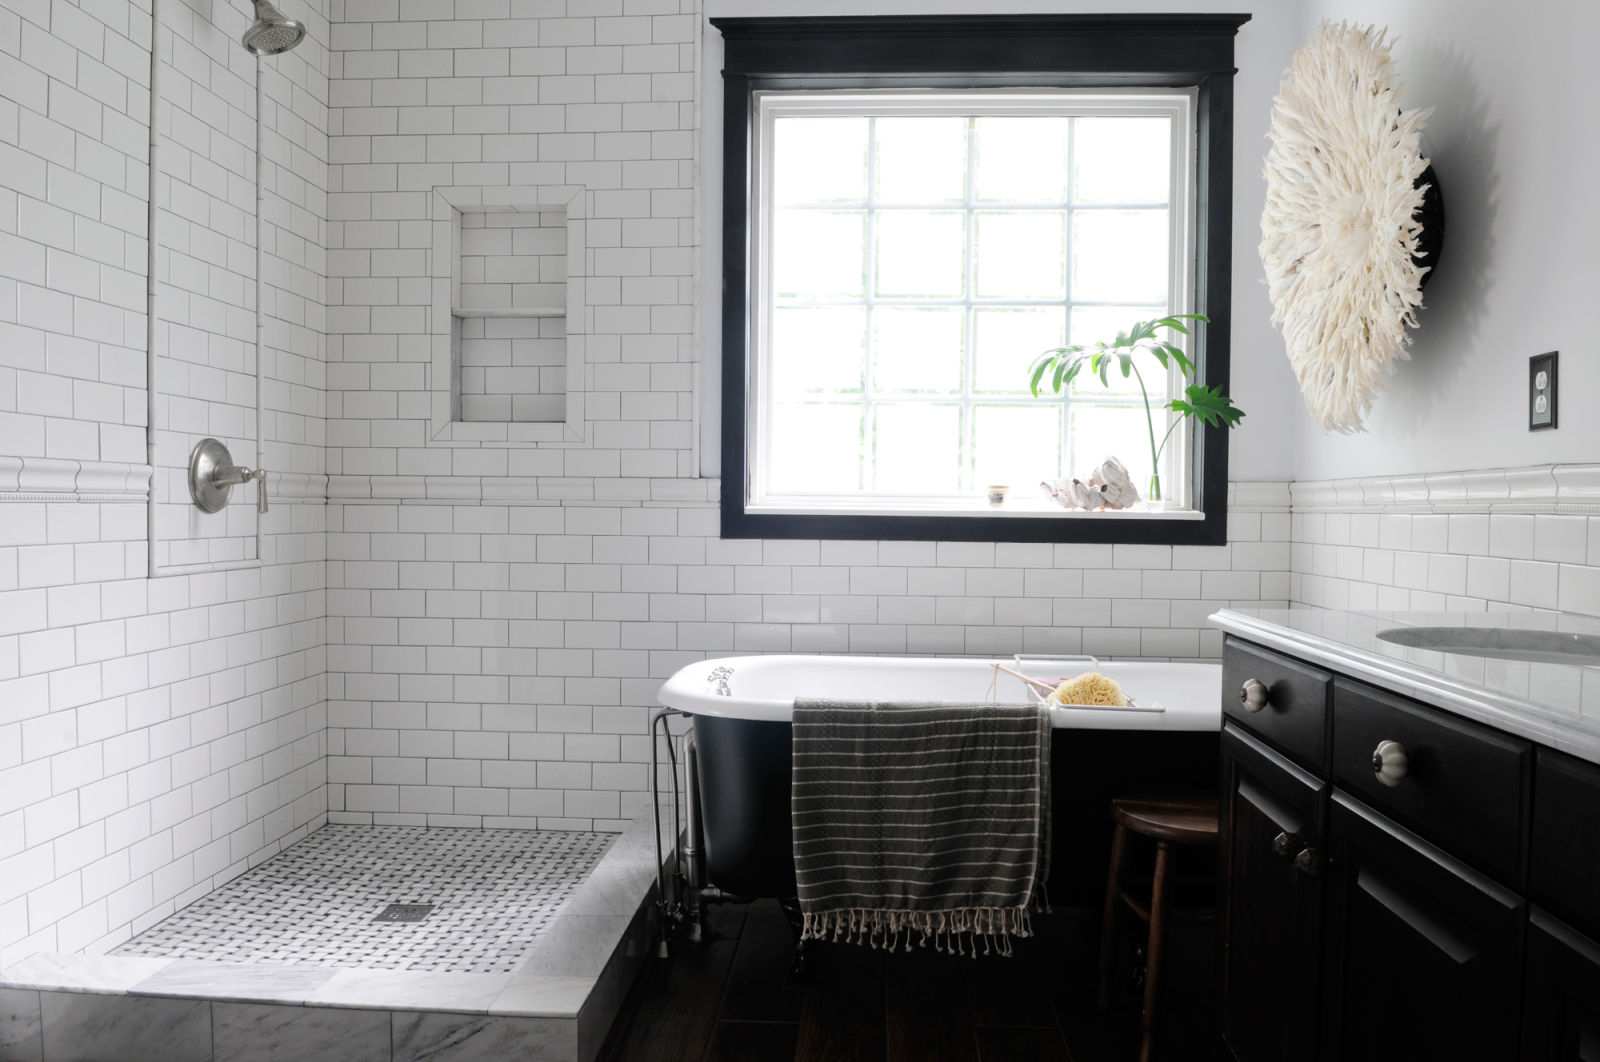 45 magnificent pictures of retro bathroom tile design ideas for Black and white bathroom sets